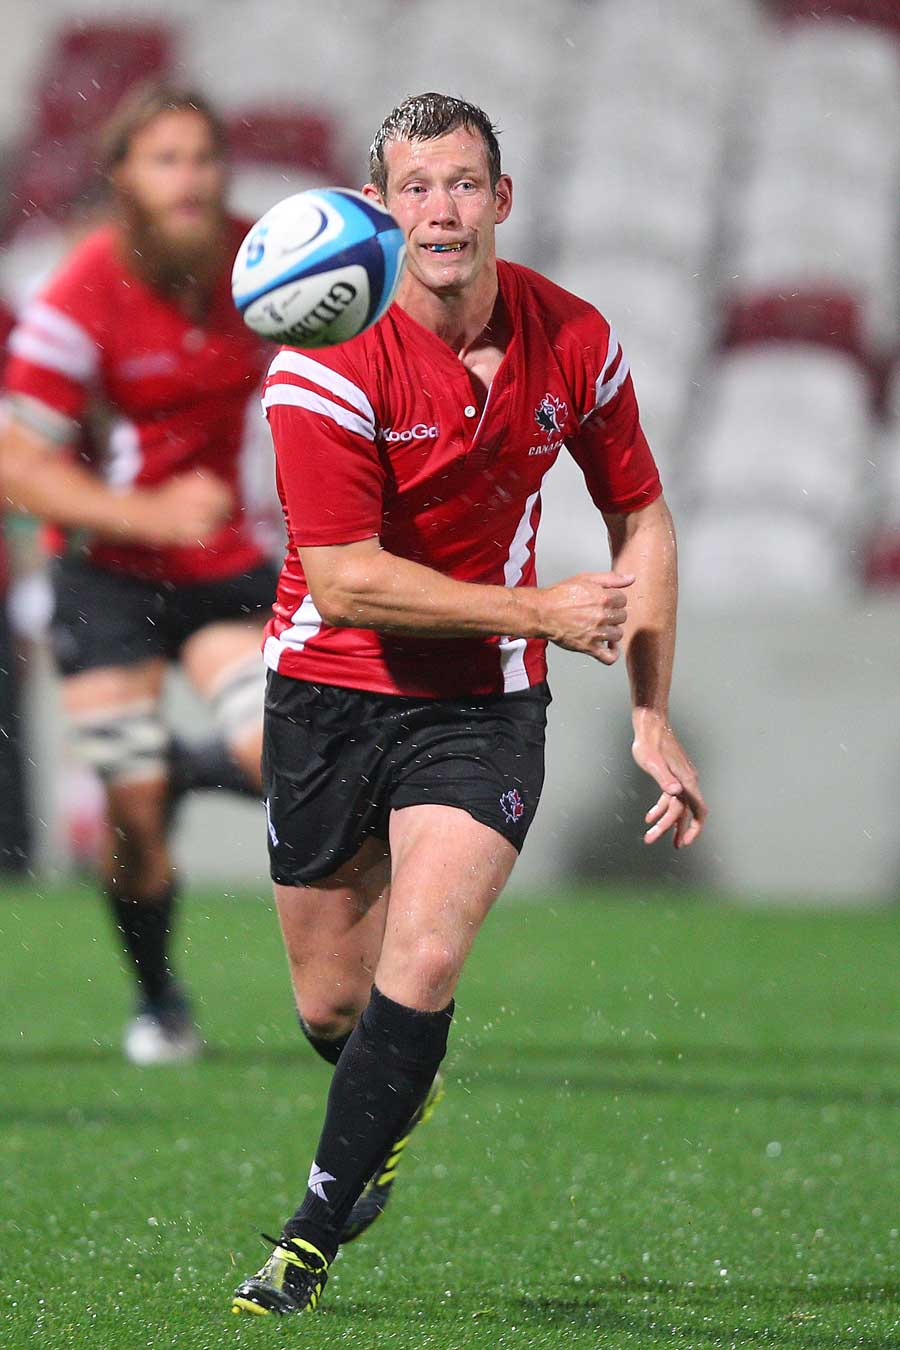 Canada's Ander Monro releases the ball against the Queensland XV